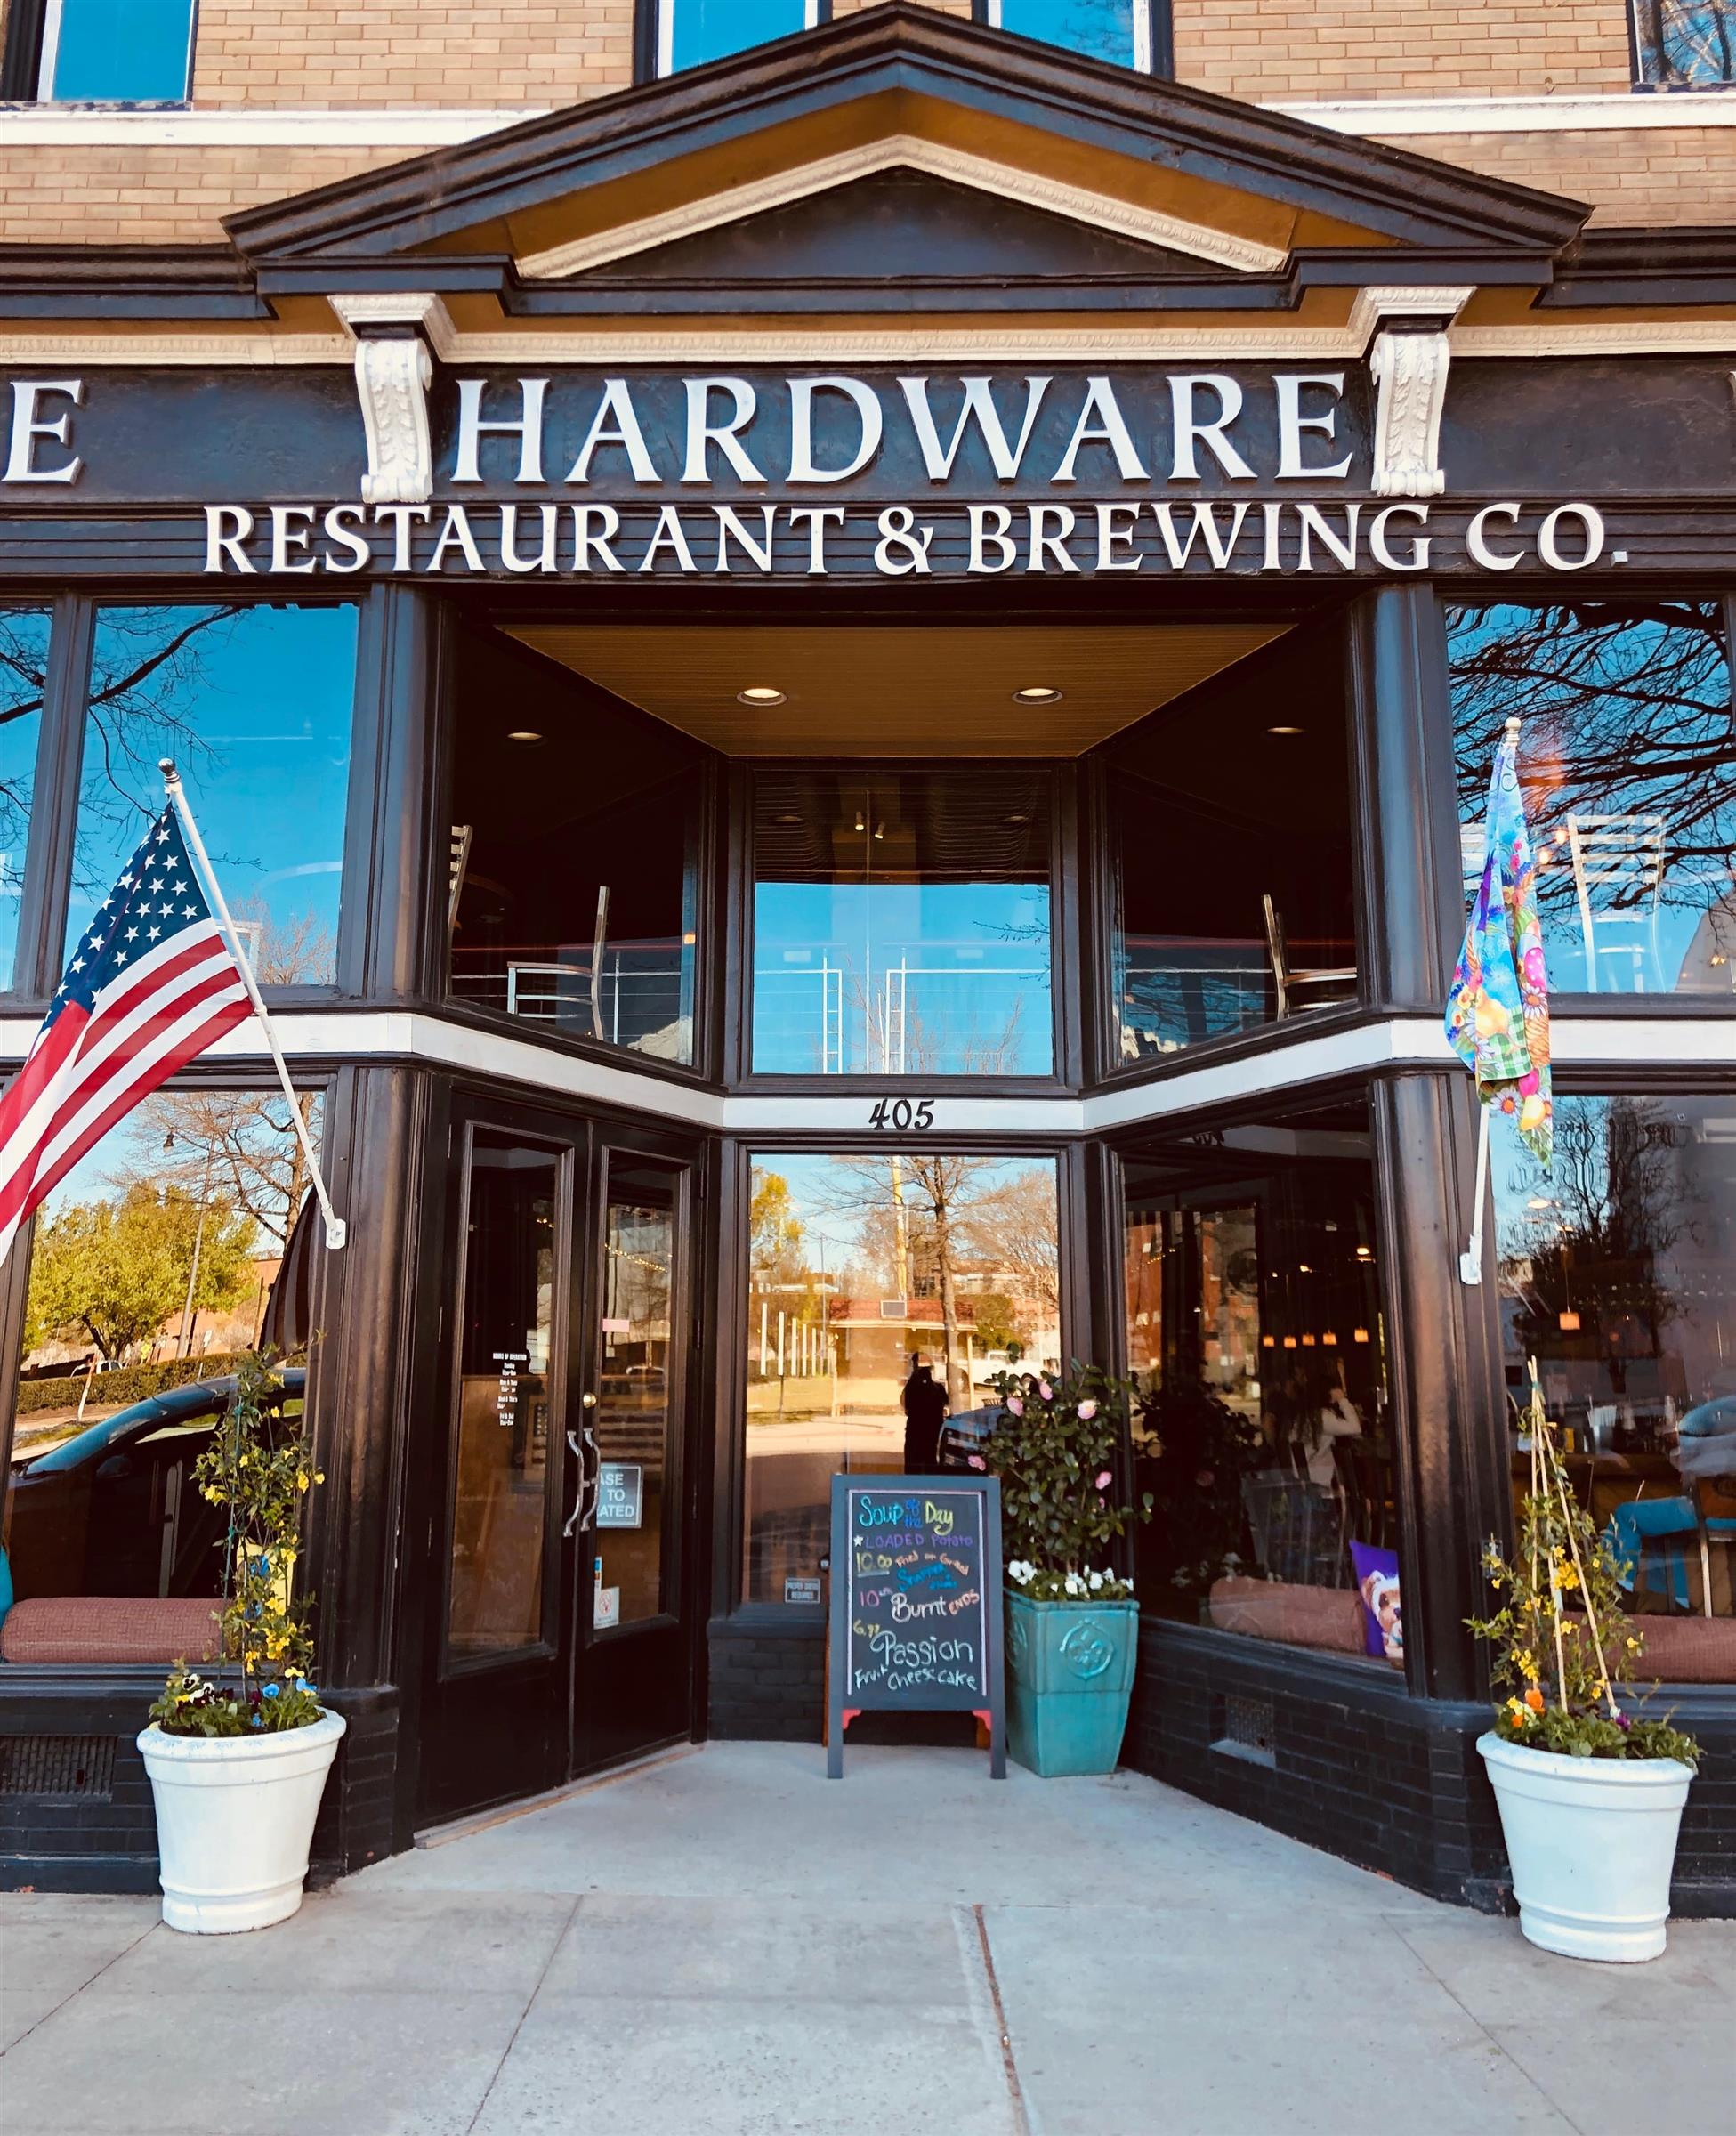 front entrance to Huske Hardware Restaurant & Brewery